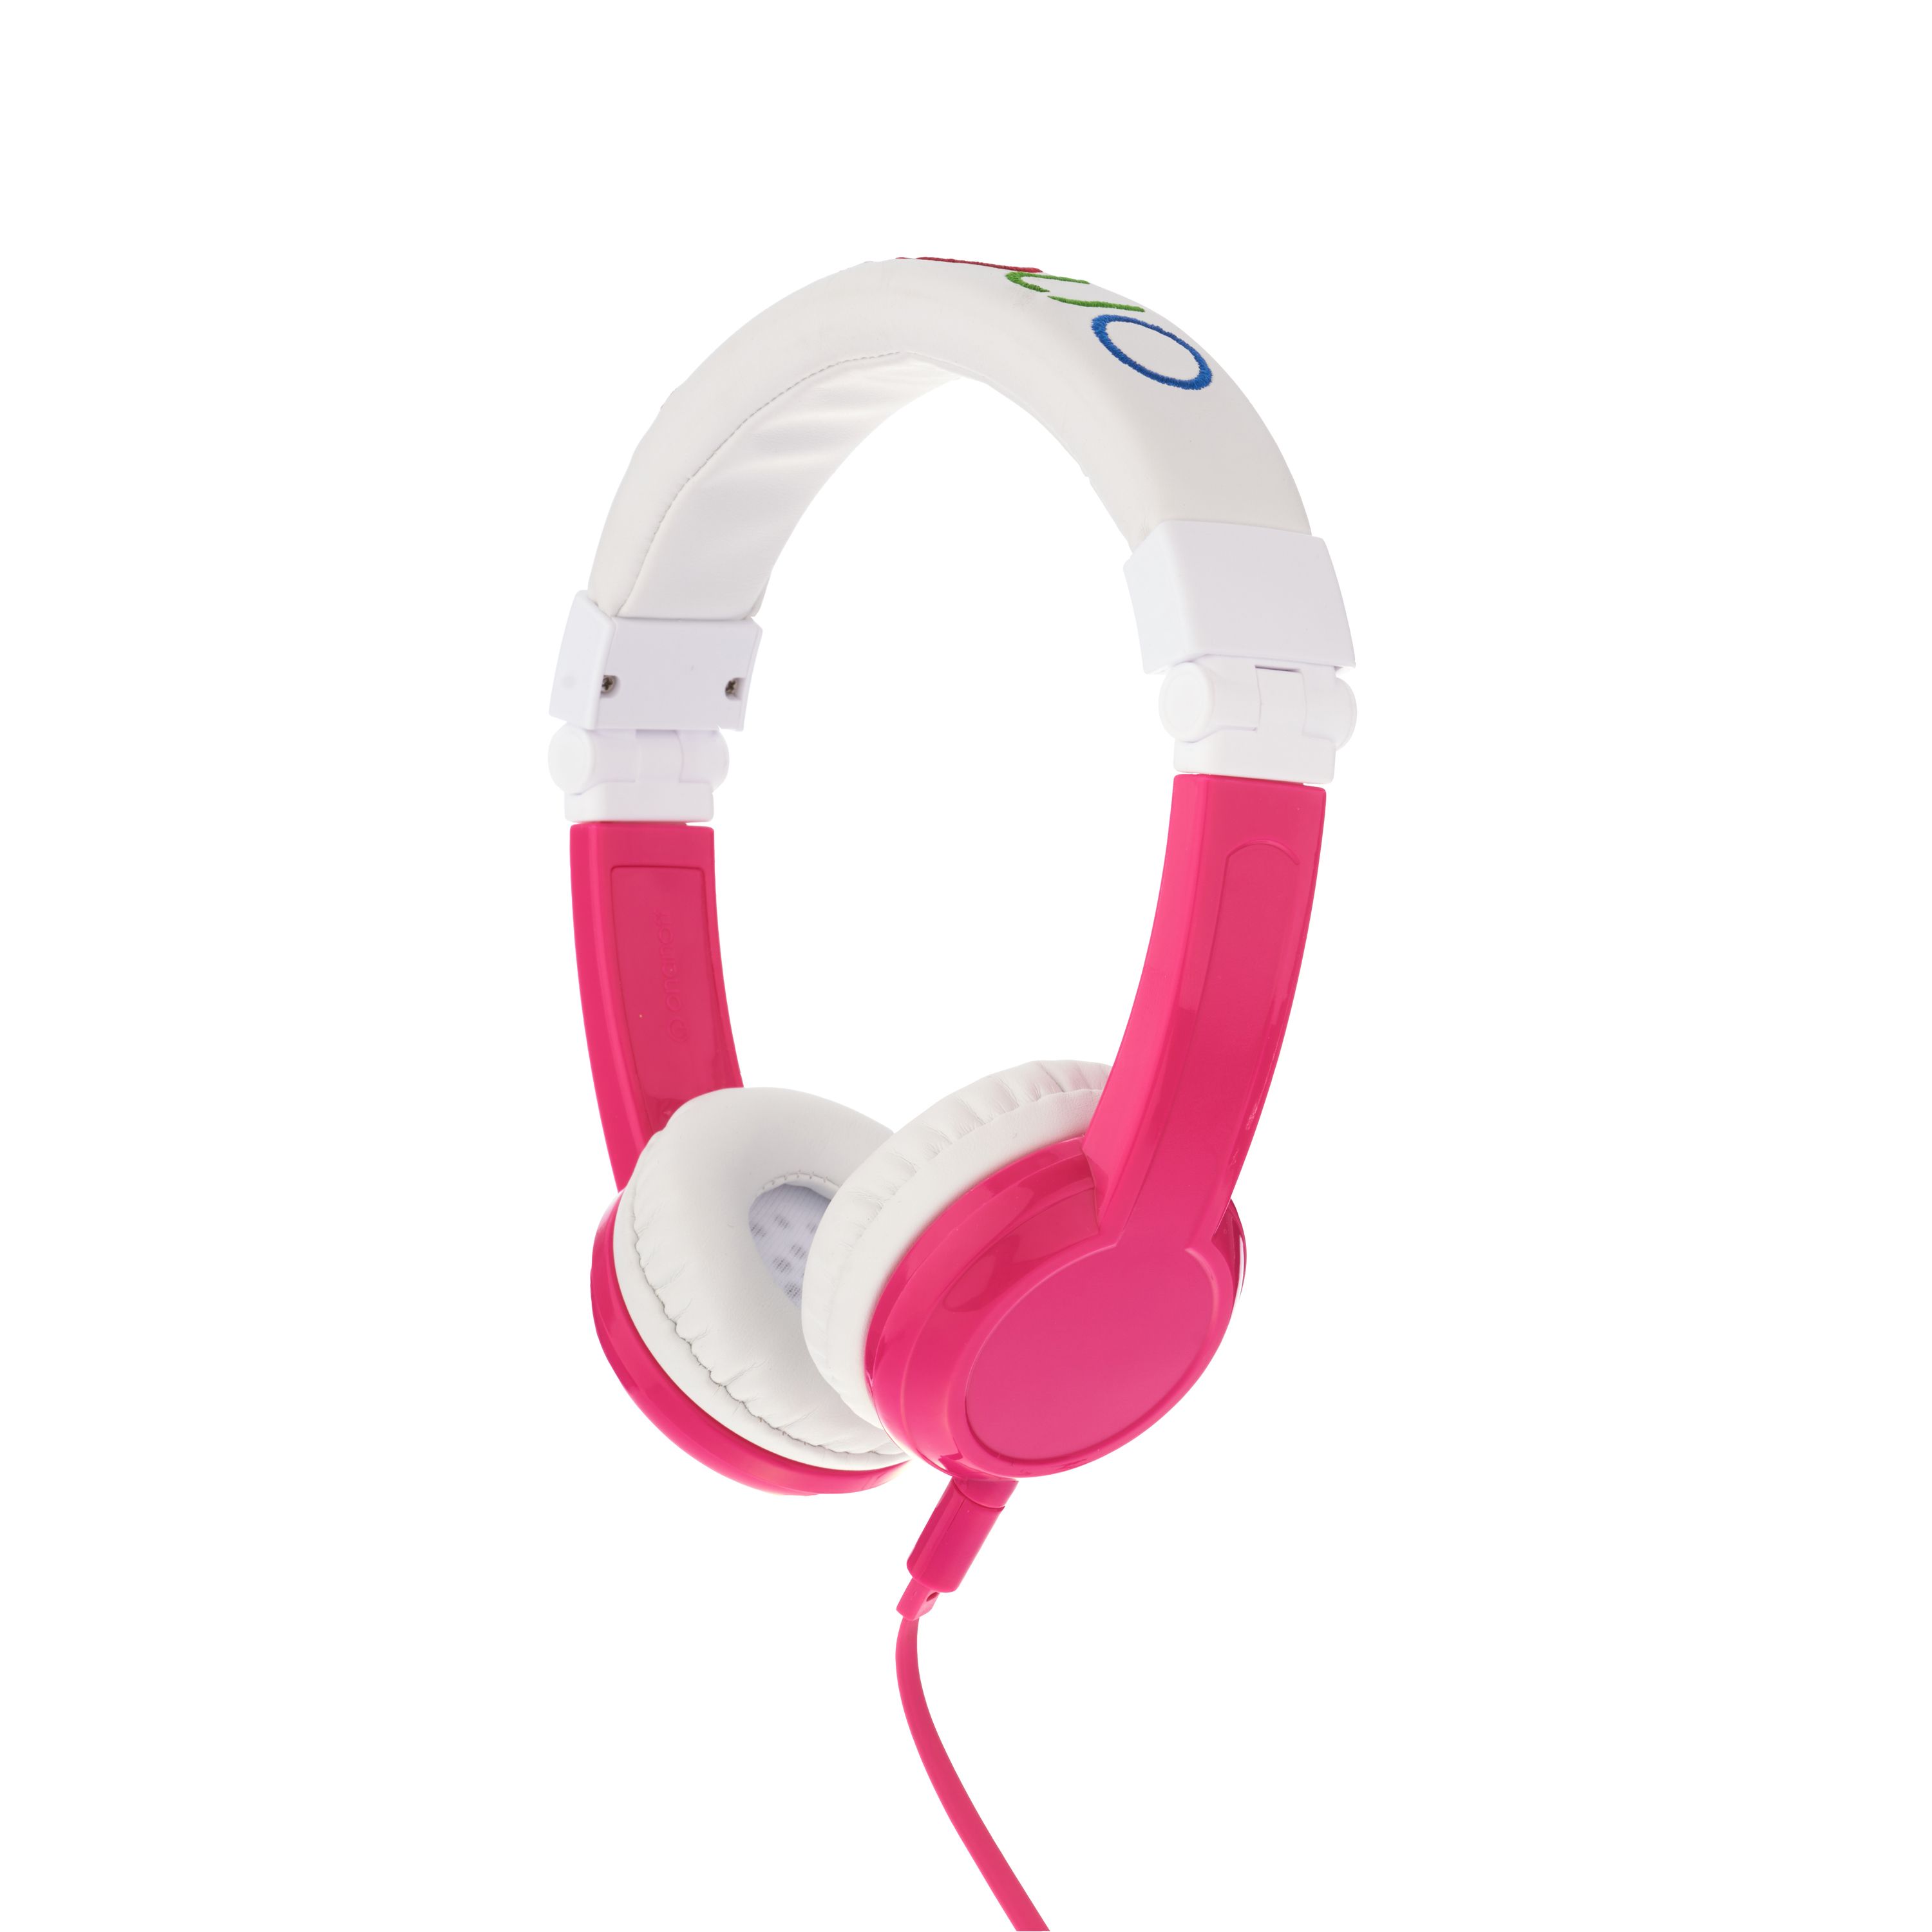 Explore, on-ear HPH, foldable with mic, pink